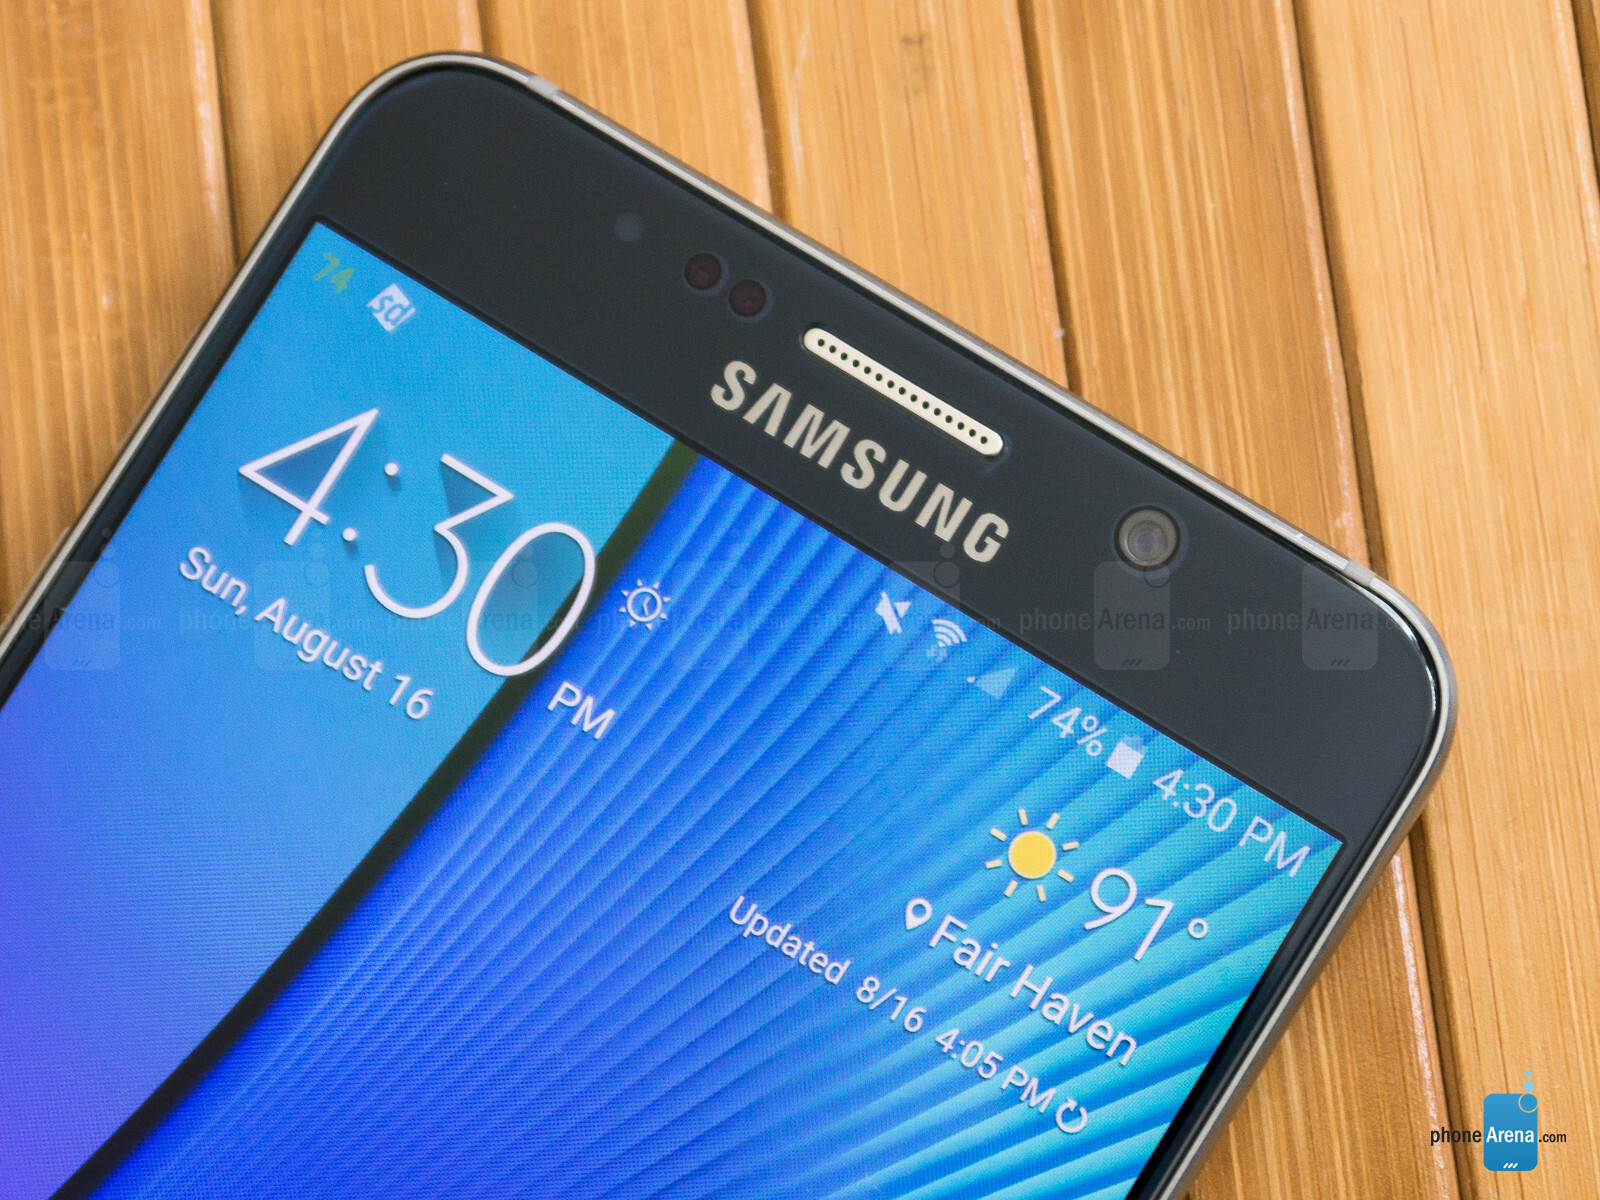 Samsung Galaxy Note 2 Review! - YouTube